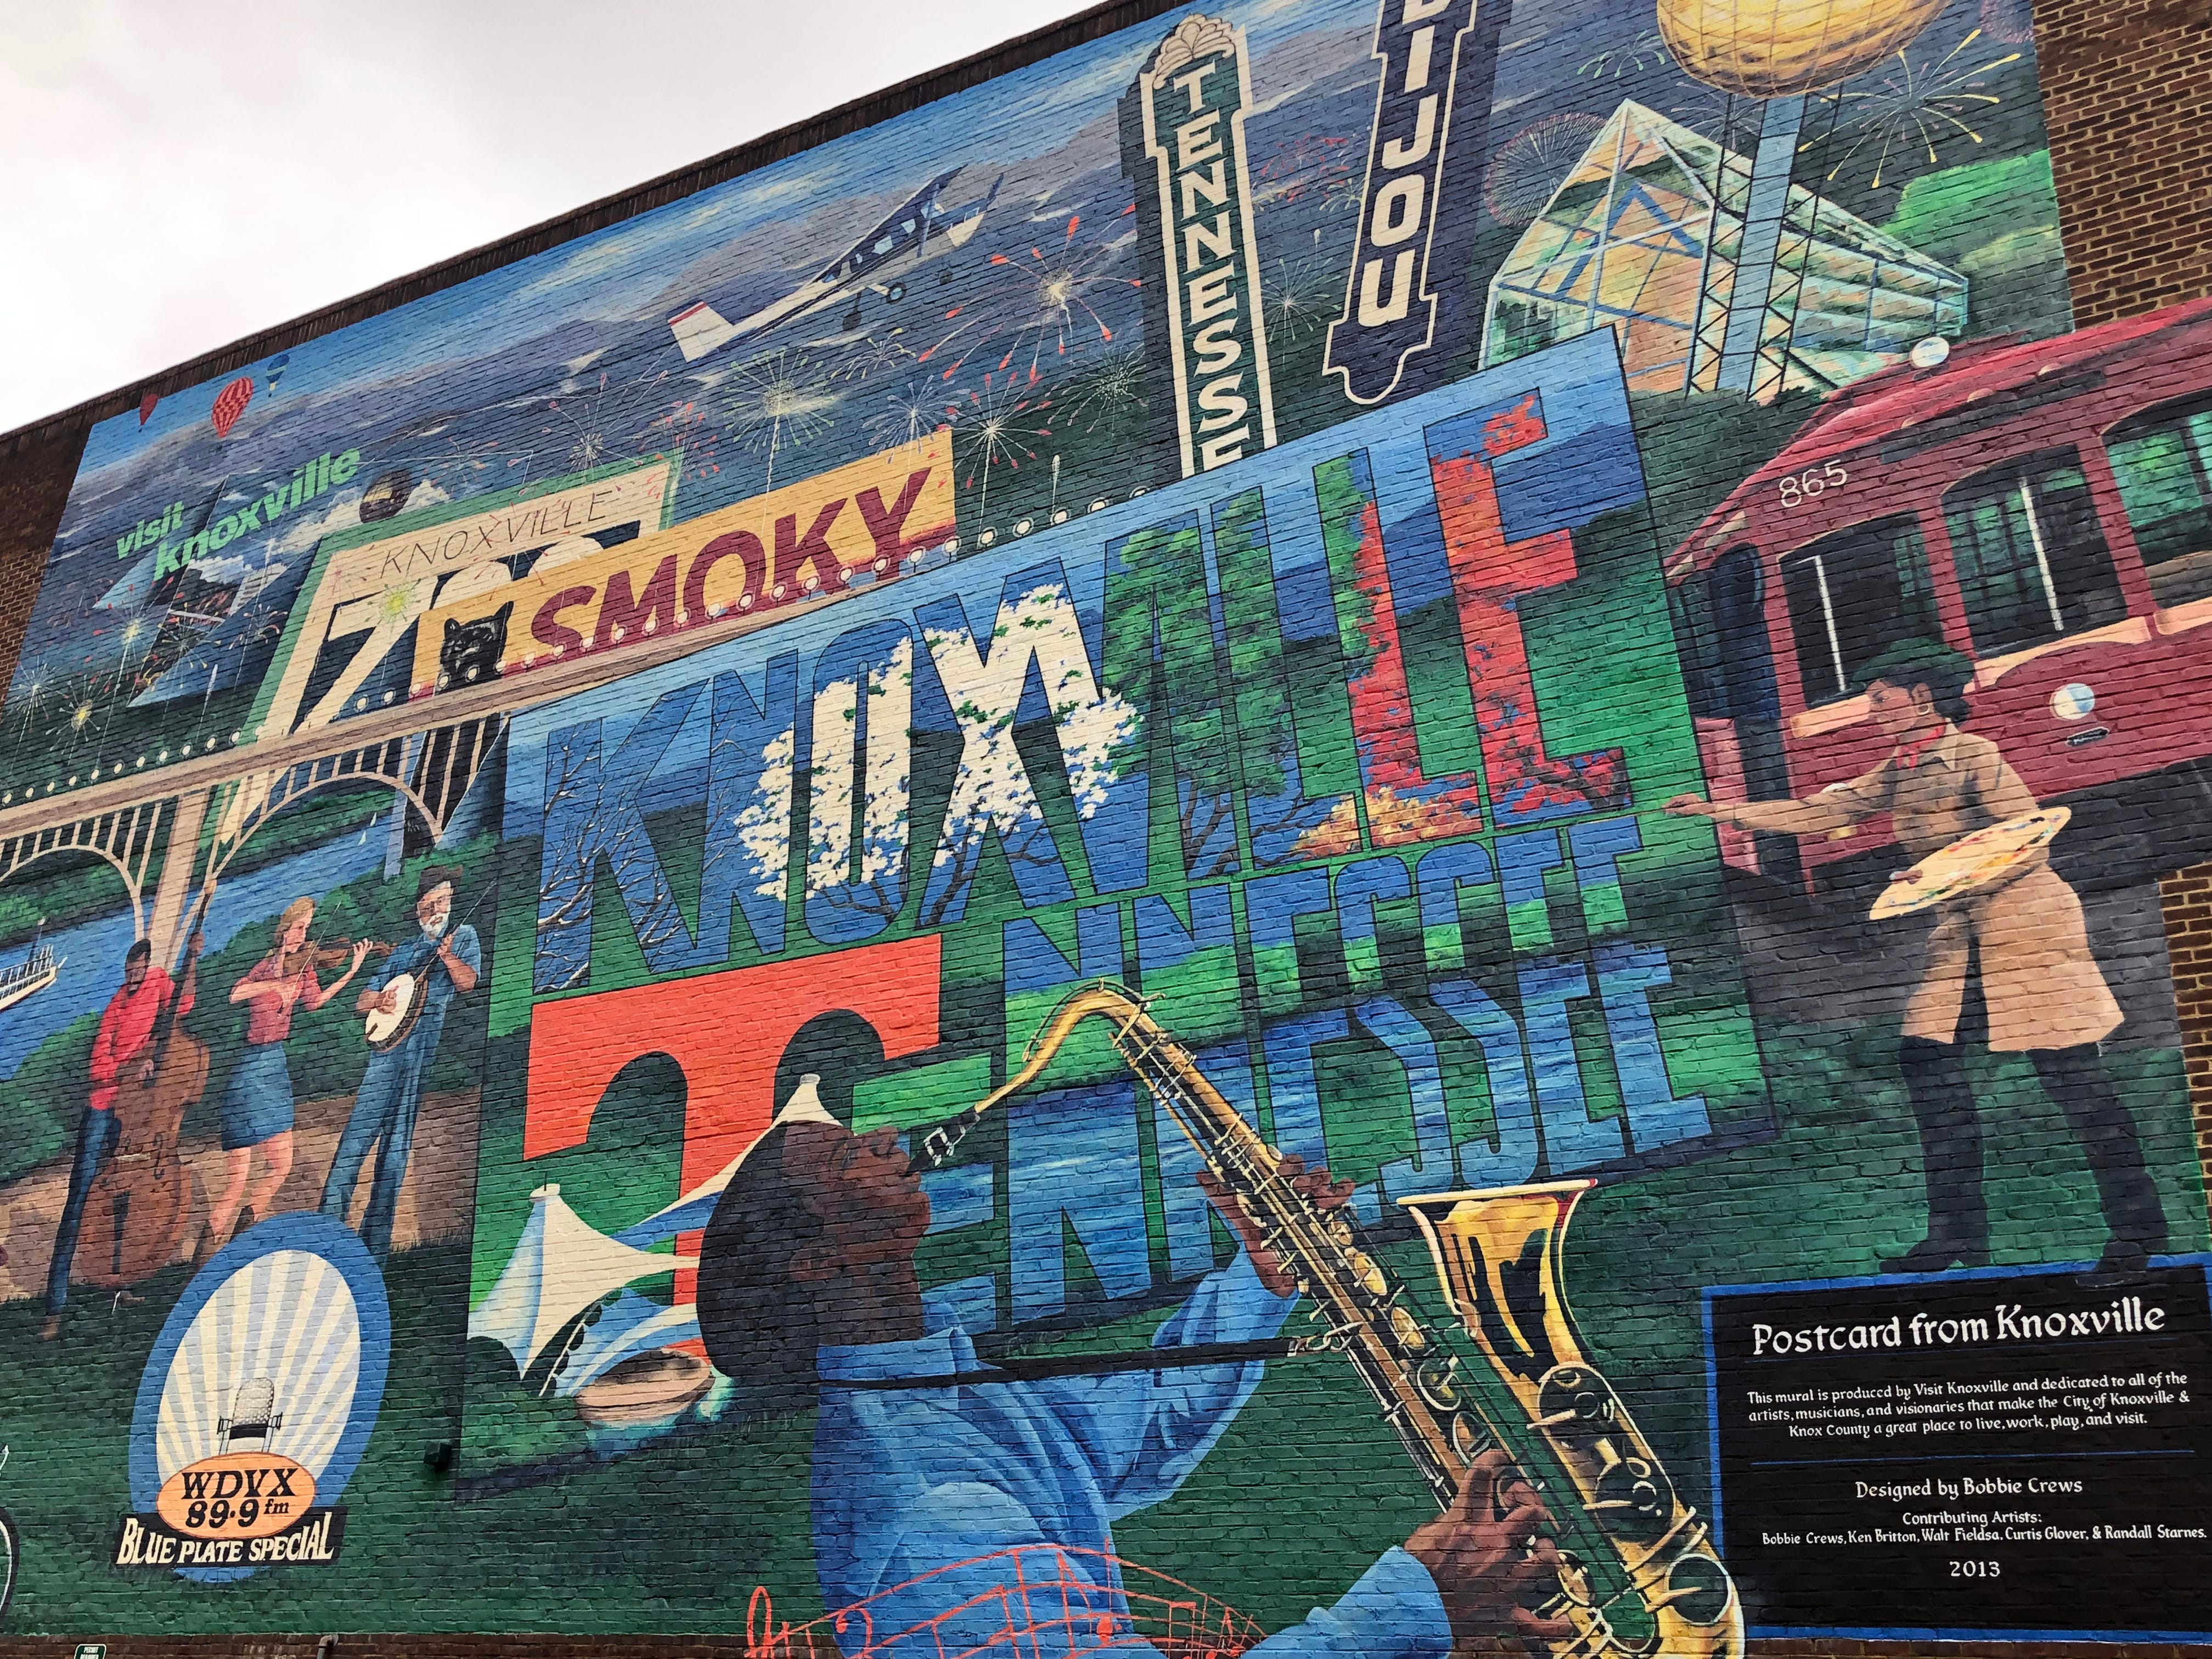 "This ""postcard from Knoxville"" is painted on the side of the Visit Knoxville building on Gay Street. It was designed by Bobby Crews and is dedicated to all of the artists, musicians and visionaries who make Knoxville a great place to live, work, play and visit."